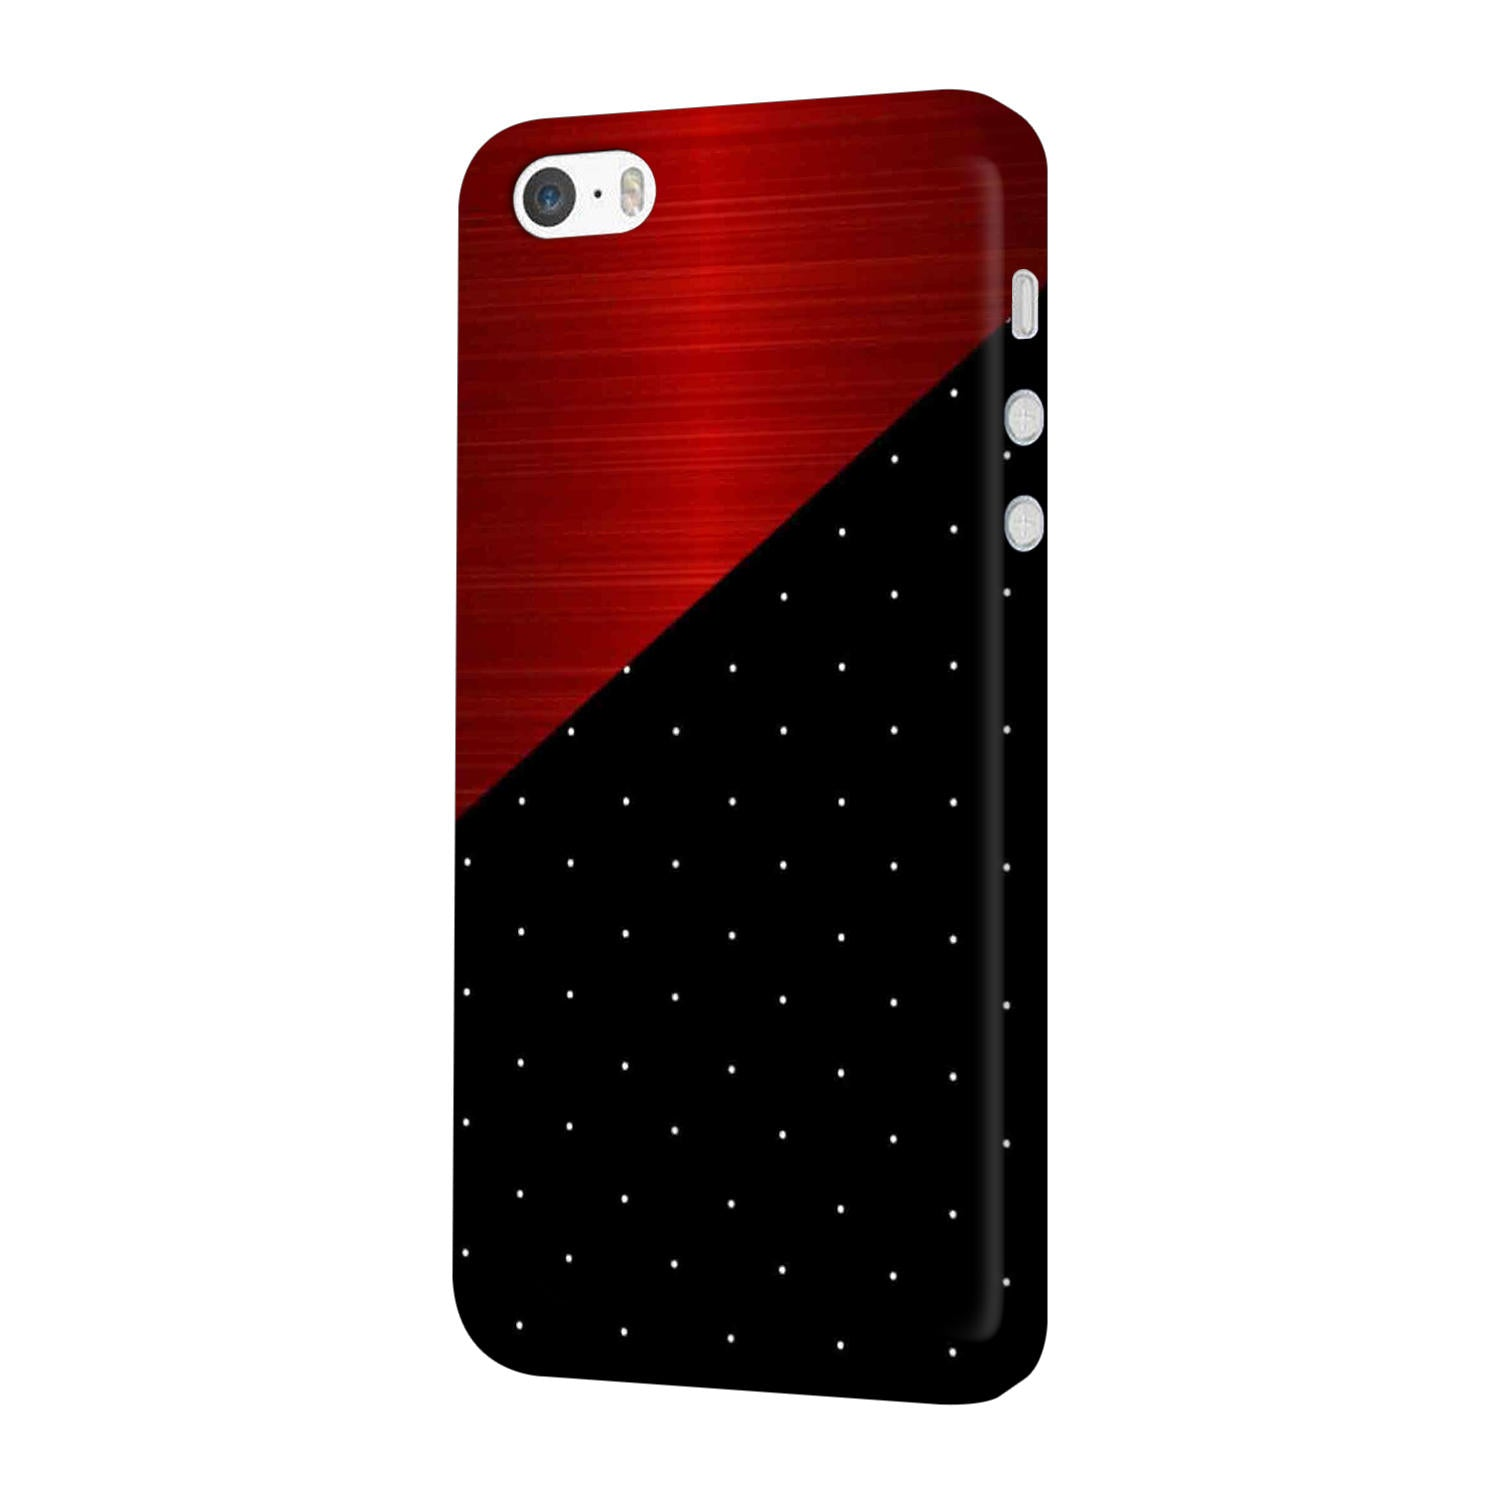 Polka Dots On Wood iPhone 5 Mobile Cover Case - MADANYU